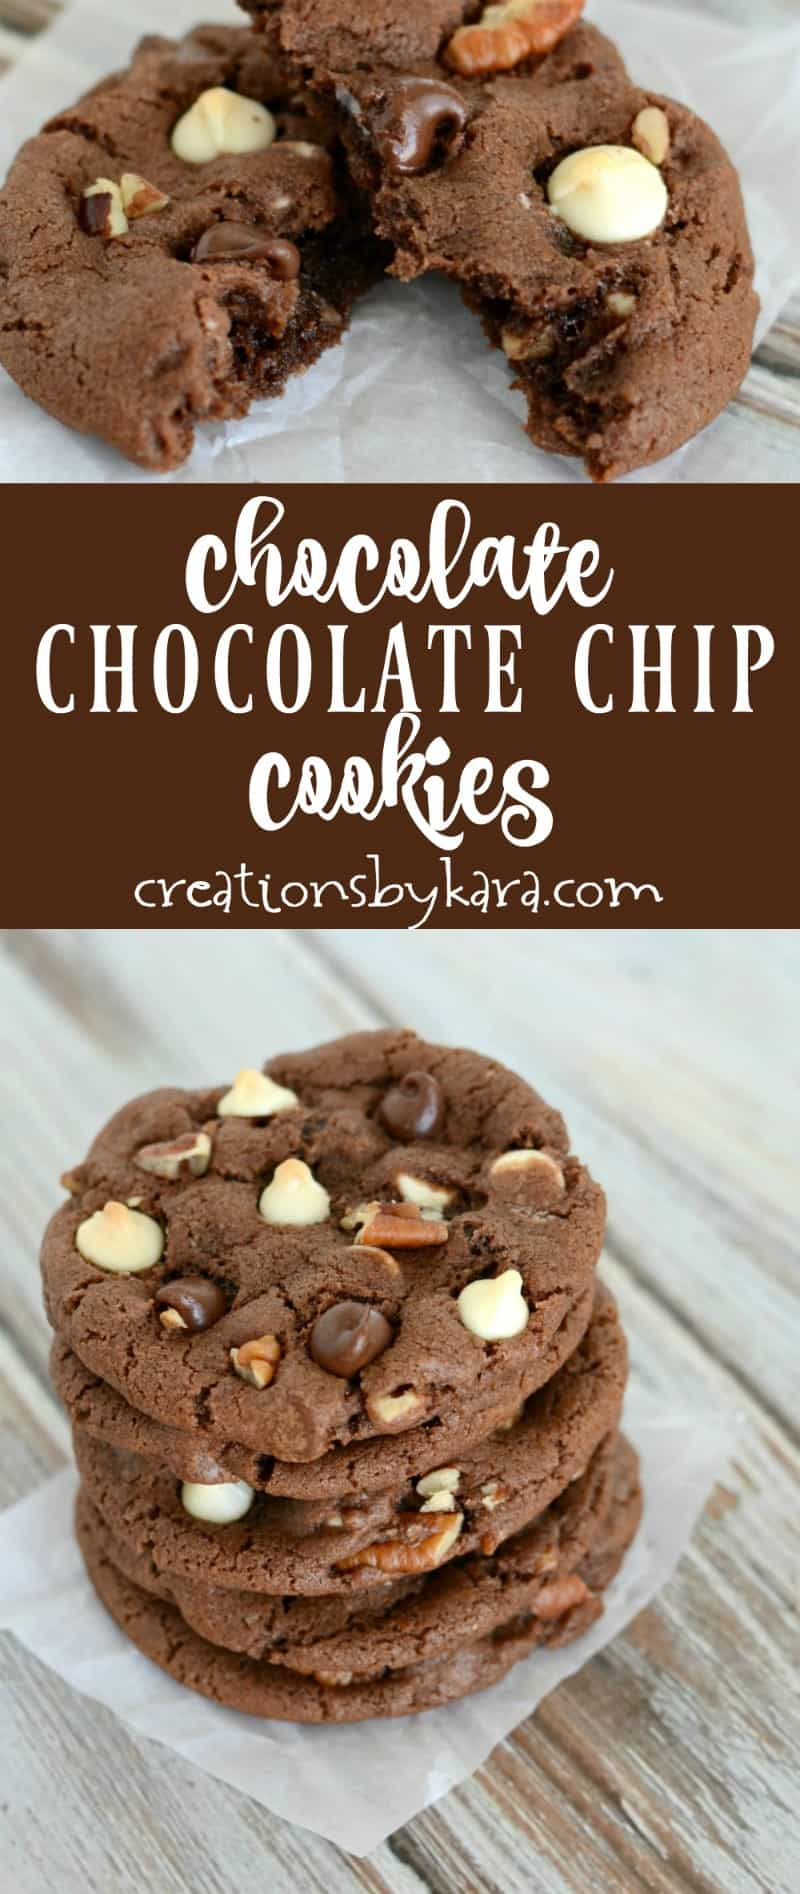 Recipe for triple chocolate chocolate chip cookies loaded with chocolate chips and pecans. A perfect cookie for chocoholics!